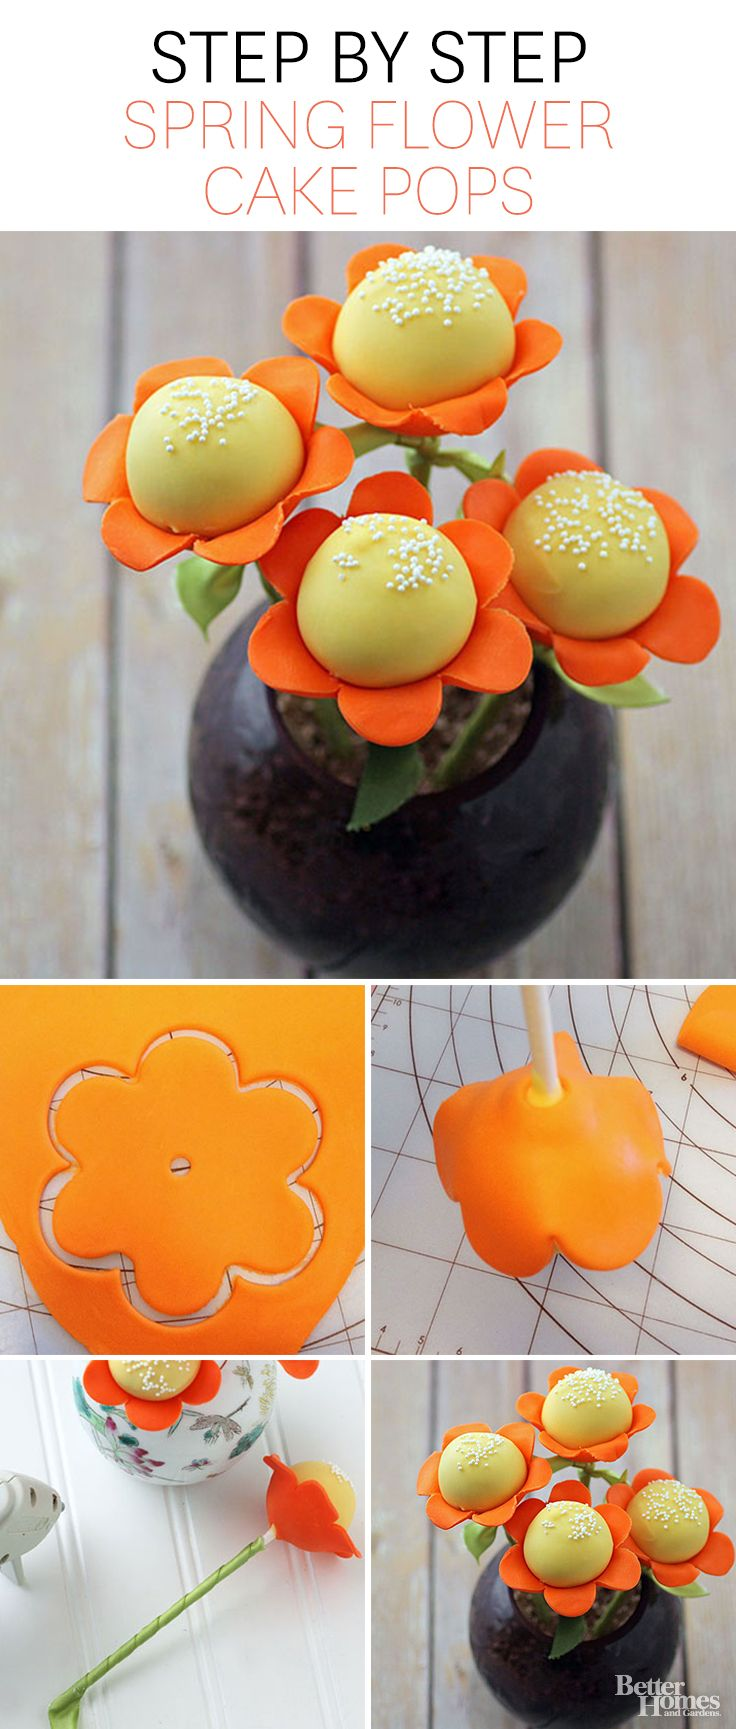 Everyone will love these easy to make Spring Flower Cake Pops: http://www.bhg.com/recipes/desserts/cakes/spring-flower-cake-pops/?socsrc=bhgpin051114flowercakepops